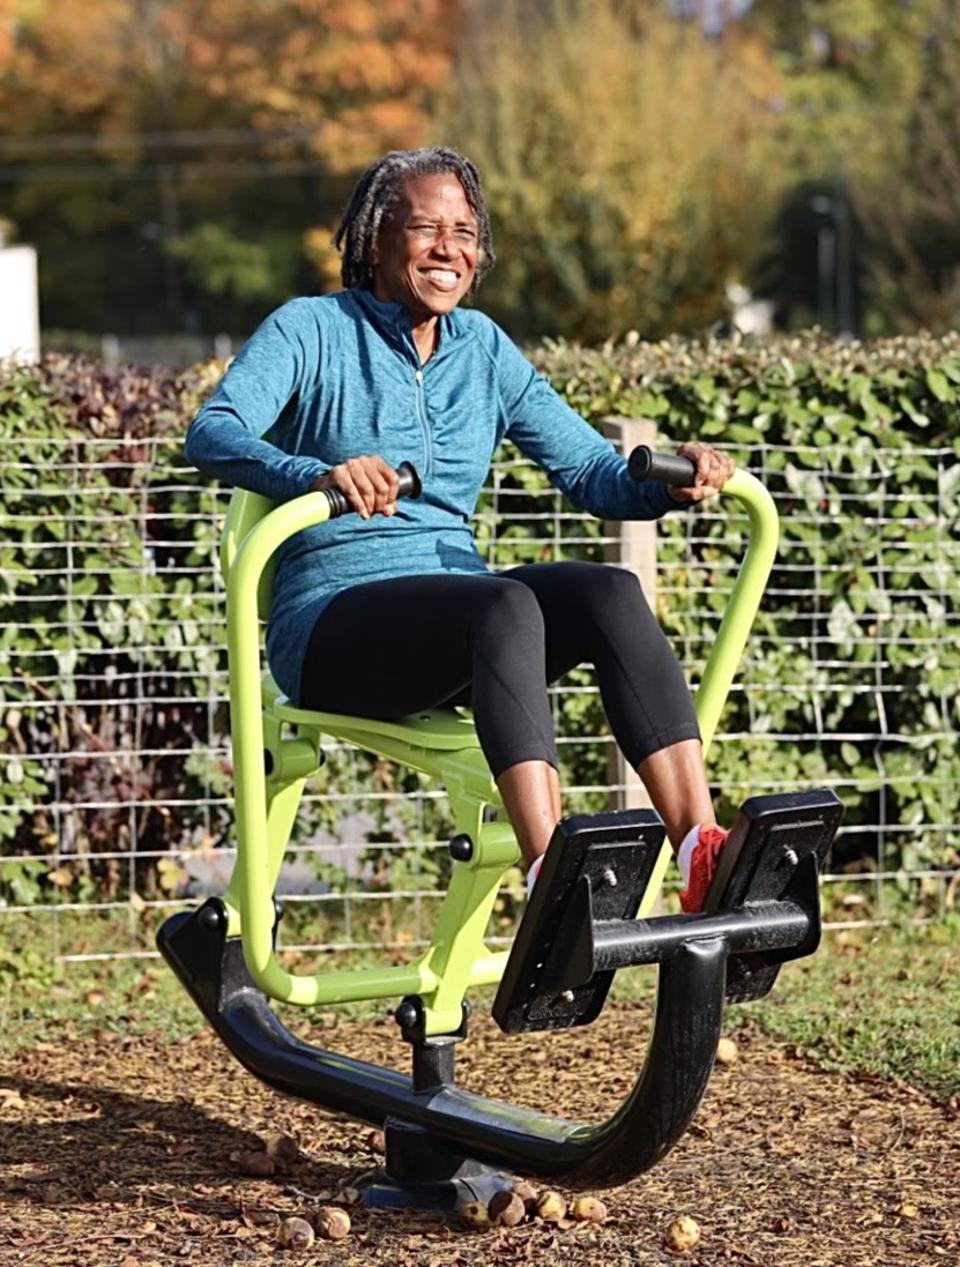 A Black woman works out on exercise equipment outside.